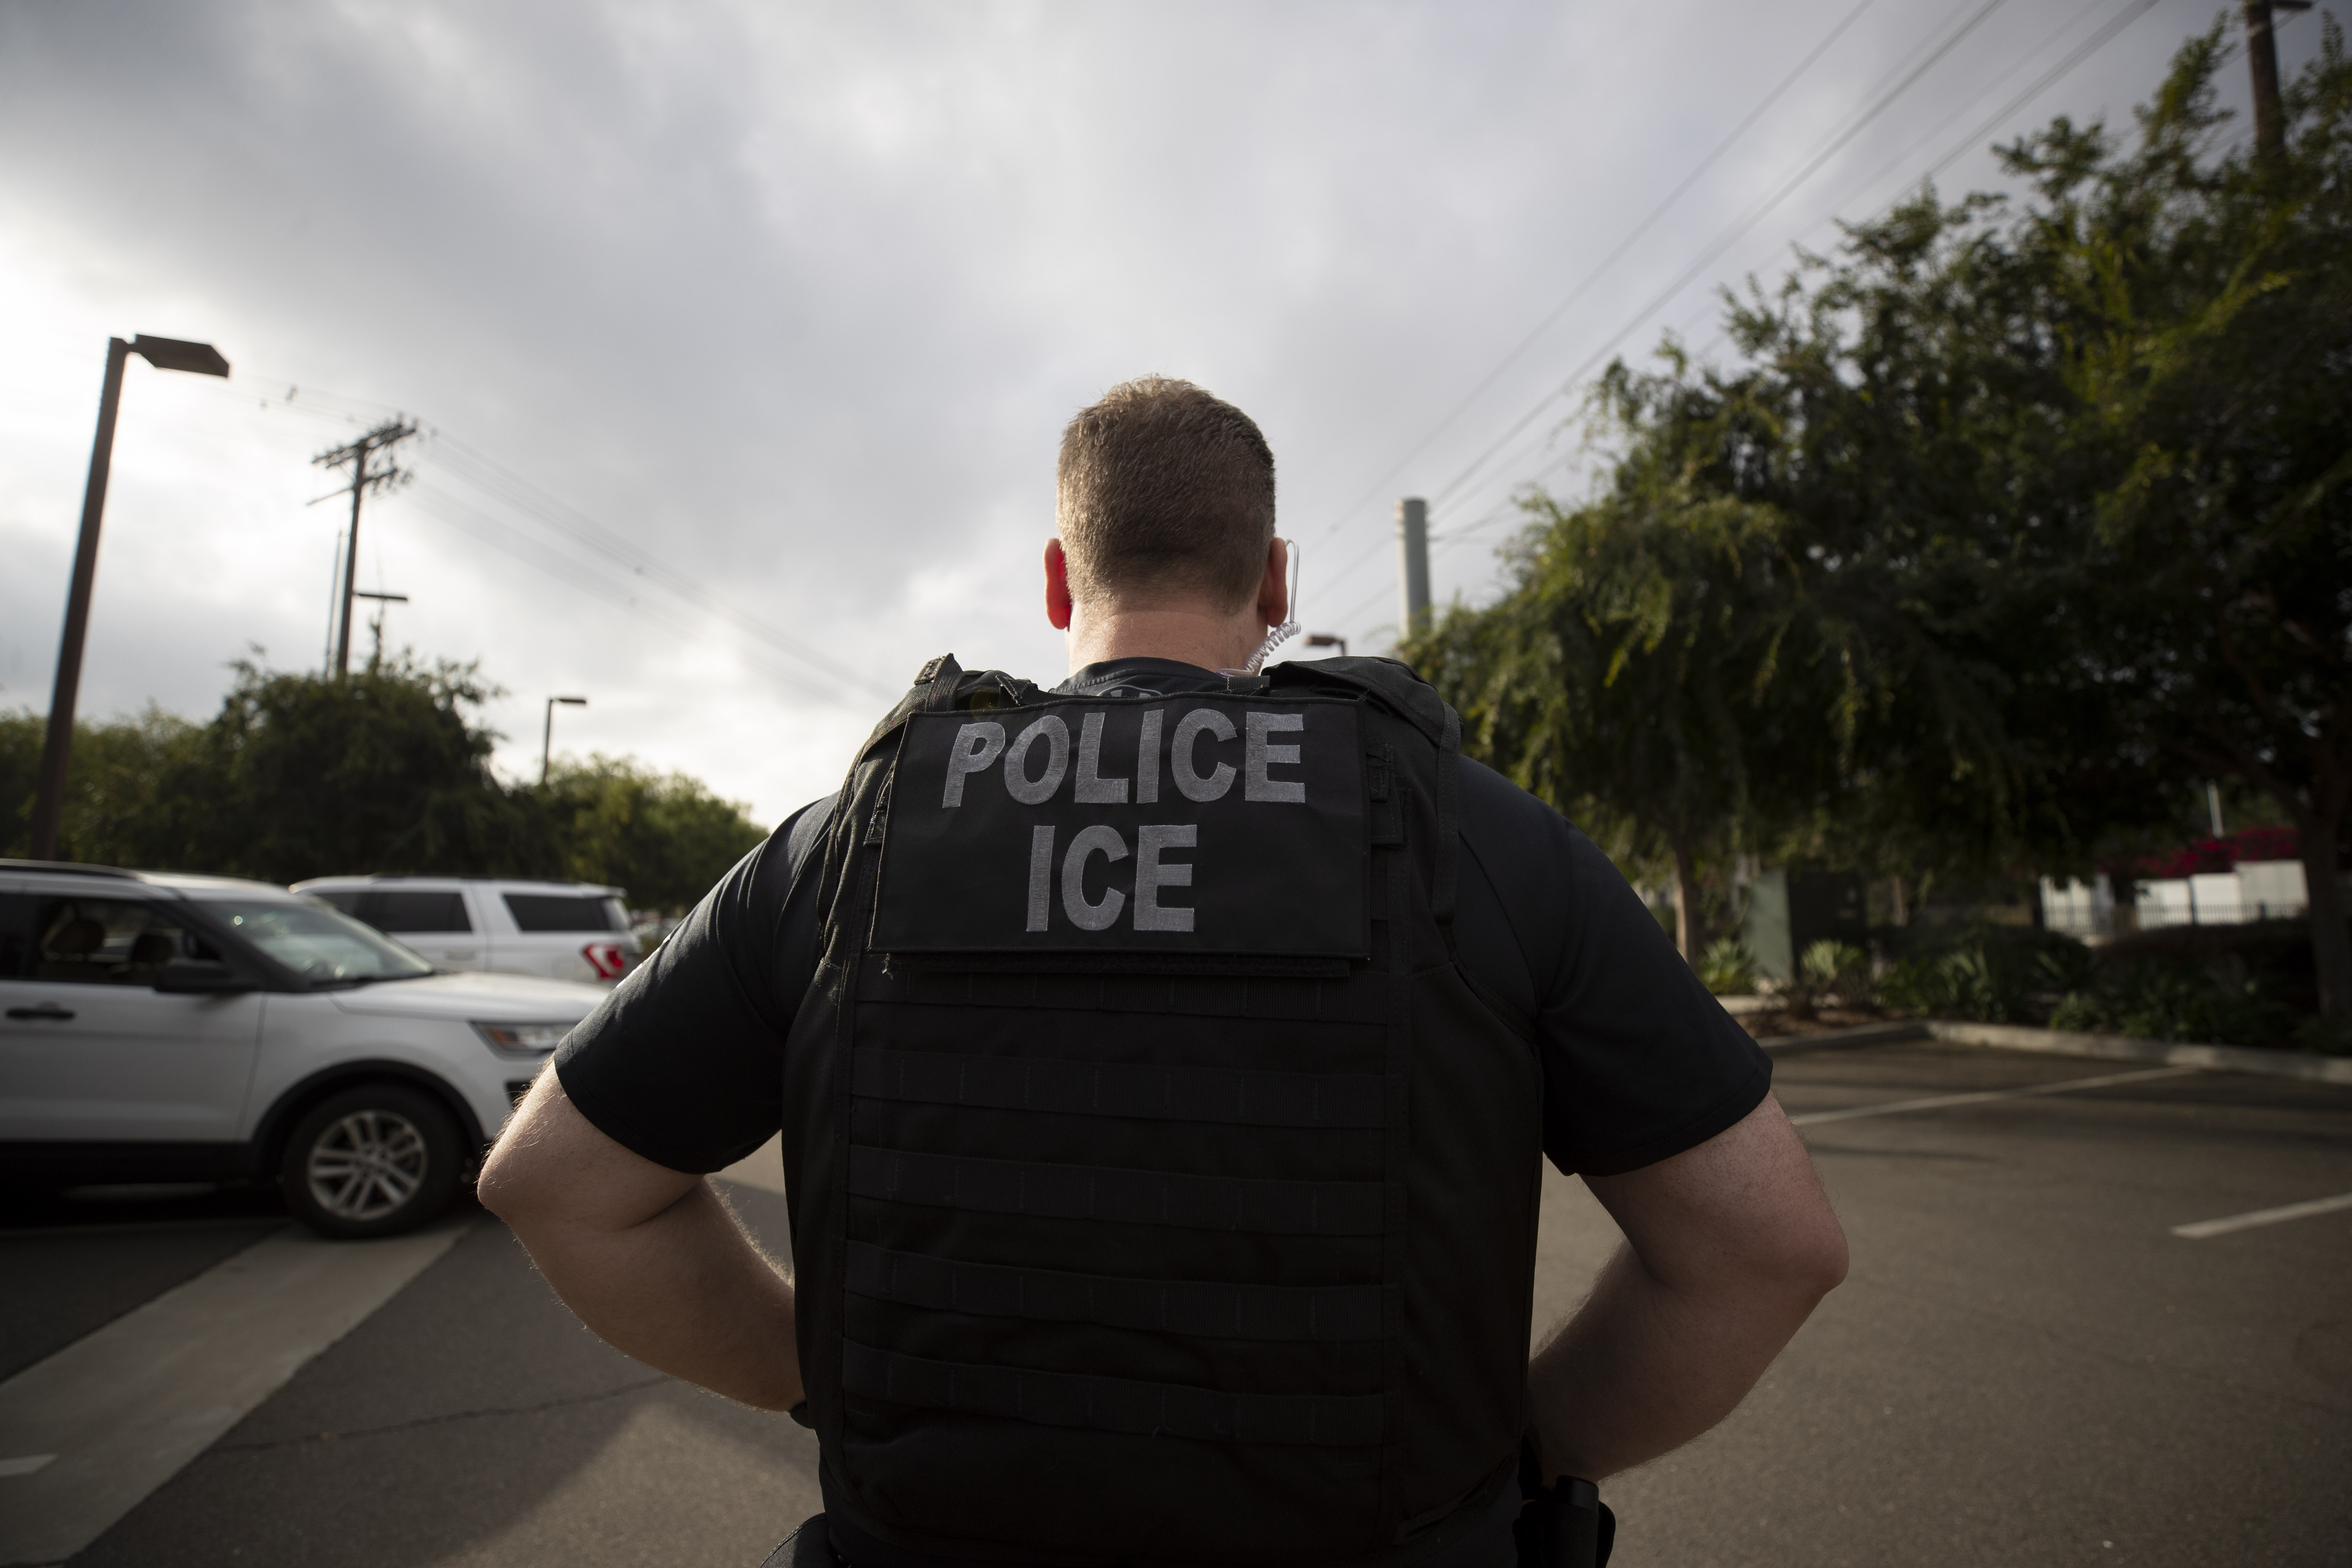 Hotels Get Caught in Immigration Crossfire